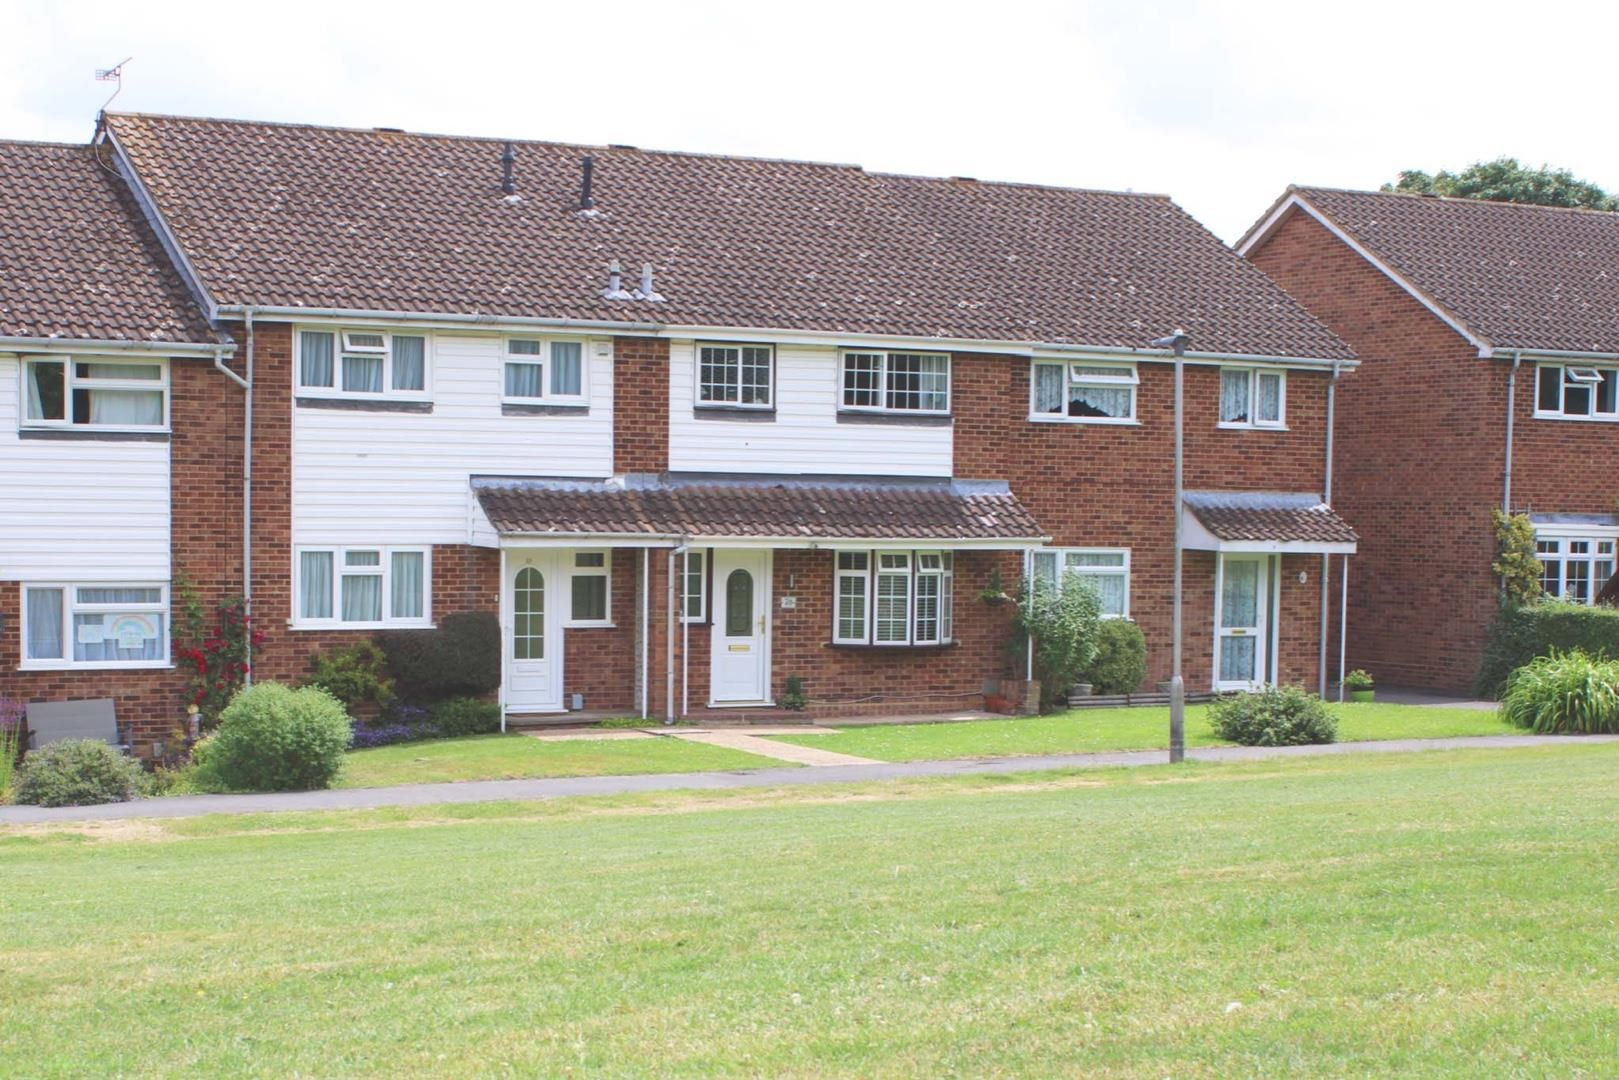 3 bed terraced for sale in Home Farm 1